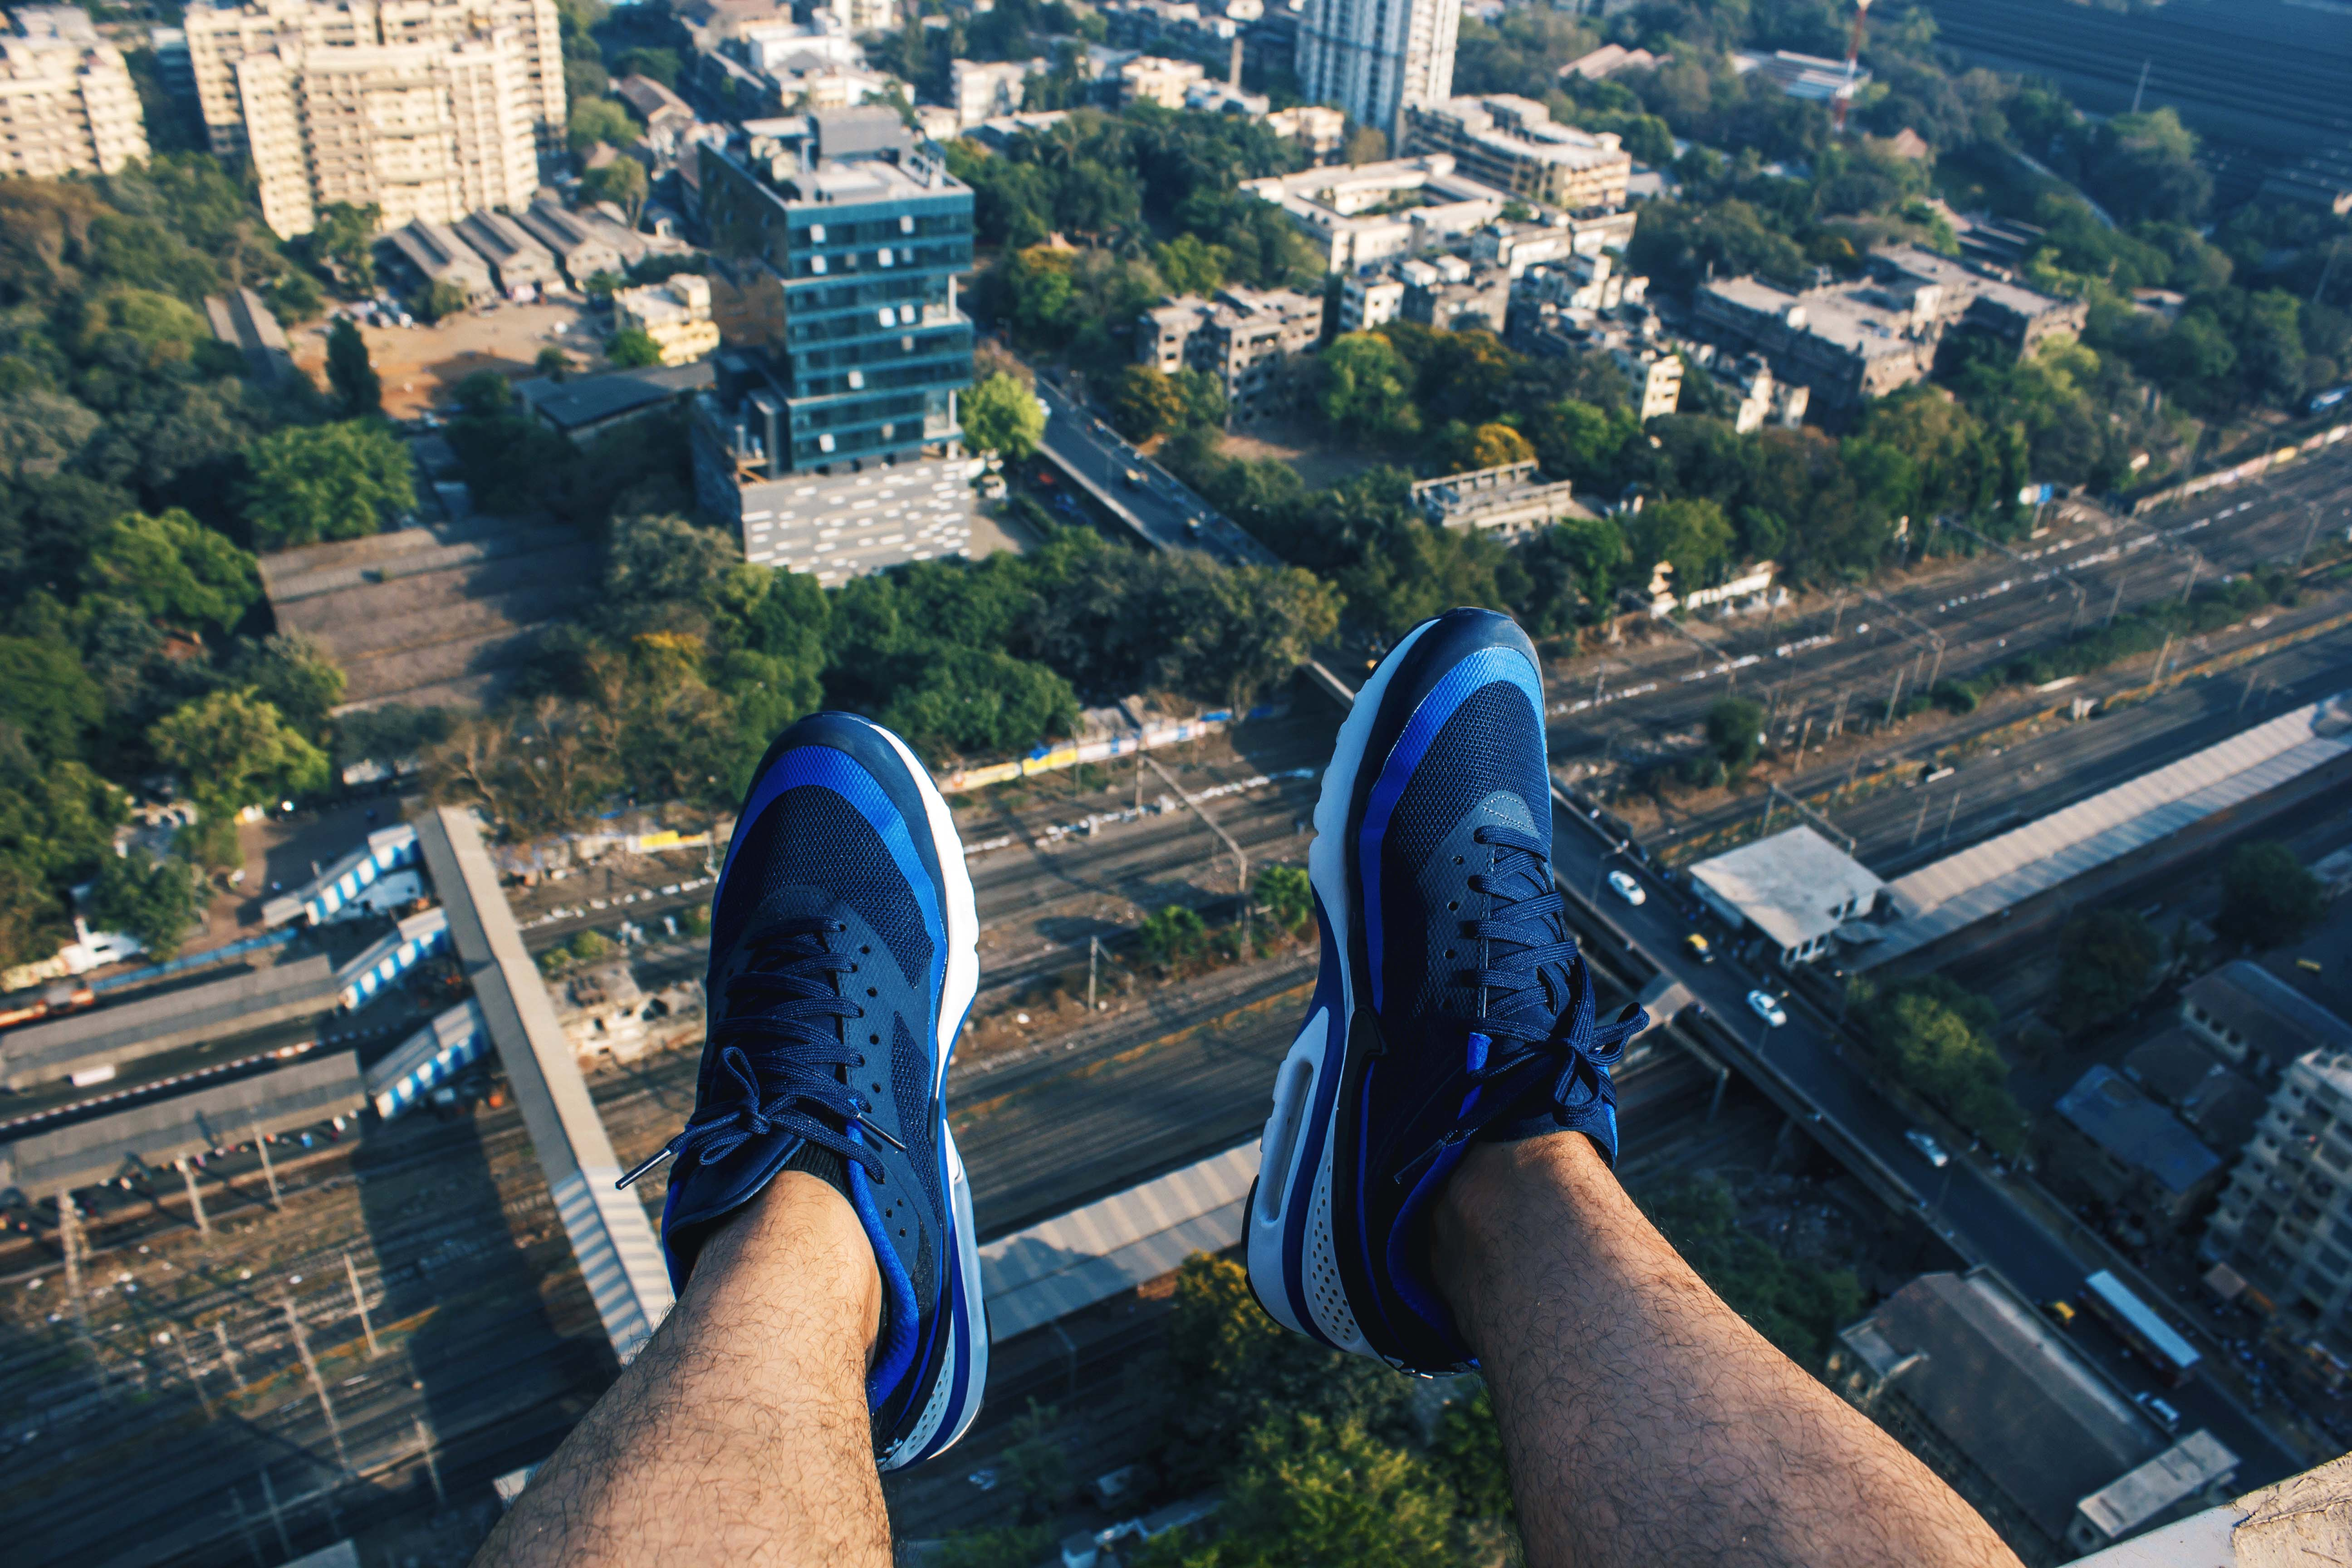 Nike Air Max BW Ultra - The Big Window to the city I live in